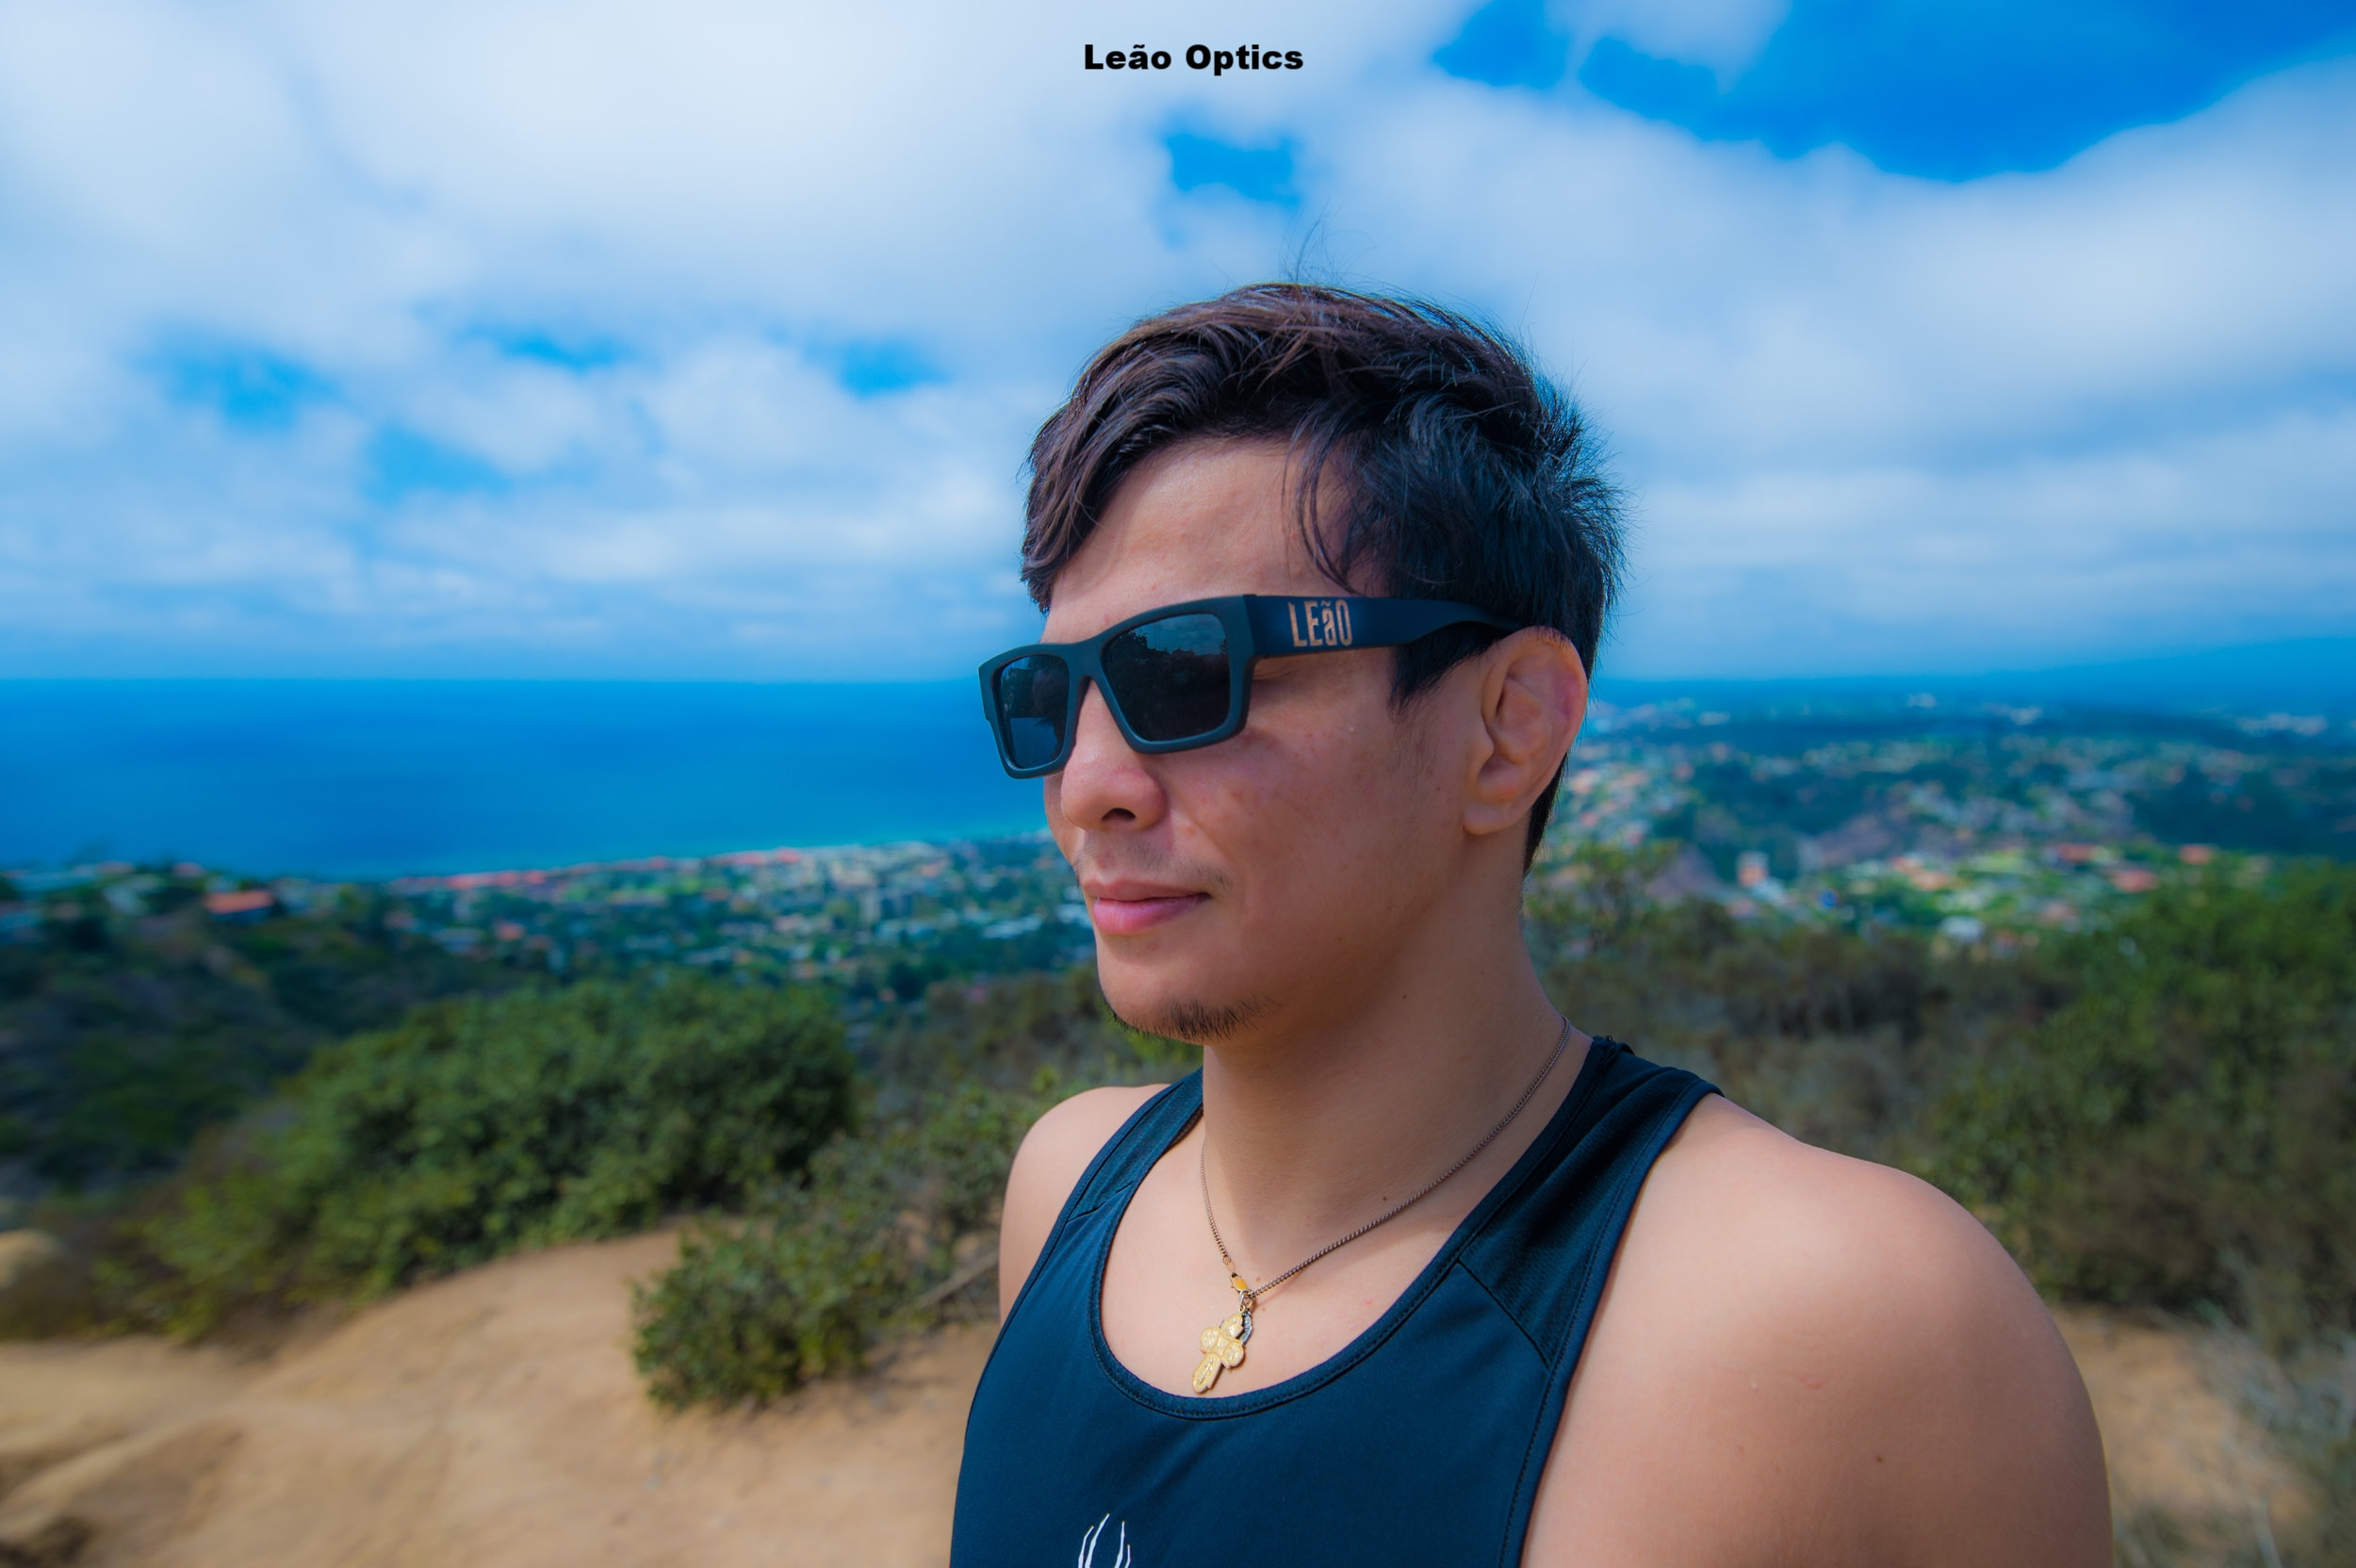 Leão Optics with Paulo Miyao